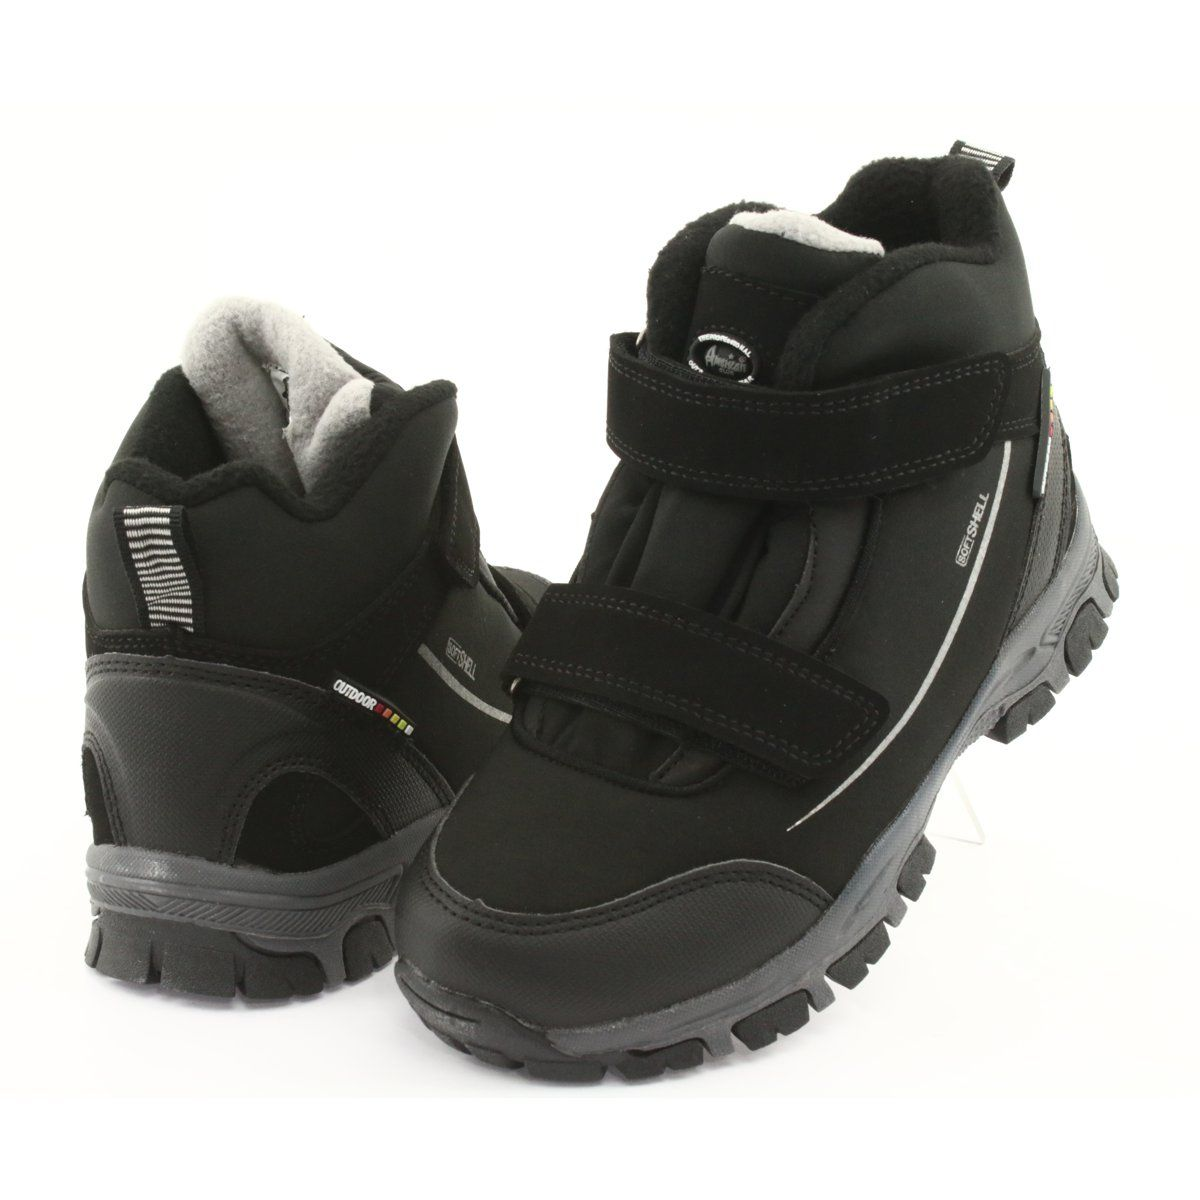 American Club Trzewiki Softshell Z Membrana American Wt64 Czarne Szare Boots Childrens Boots Kid Shoes